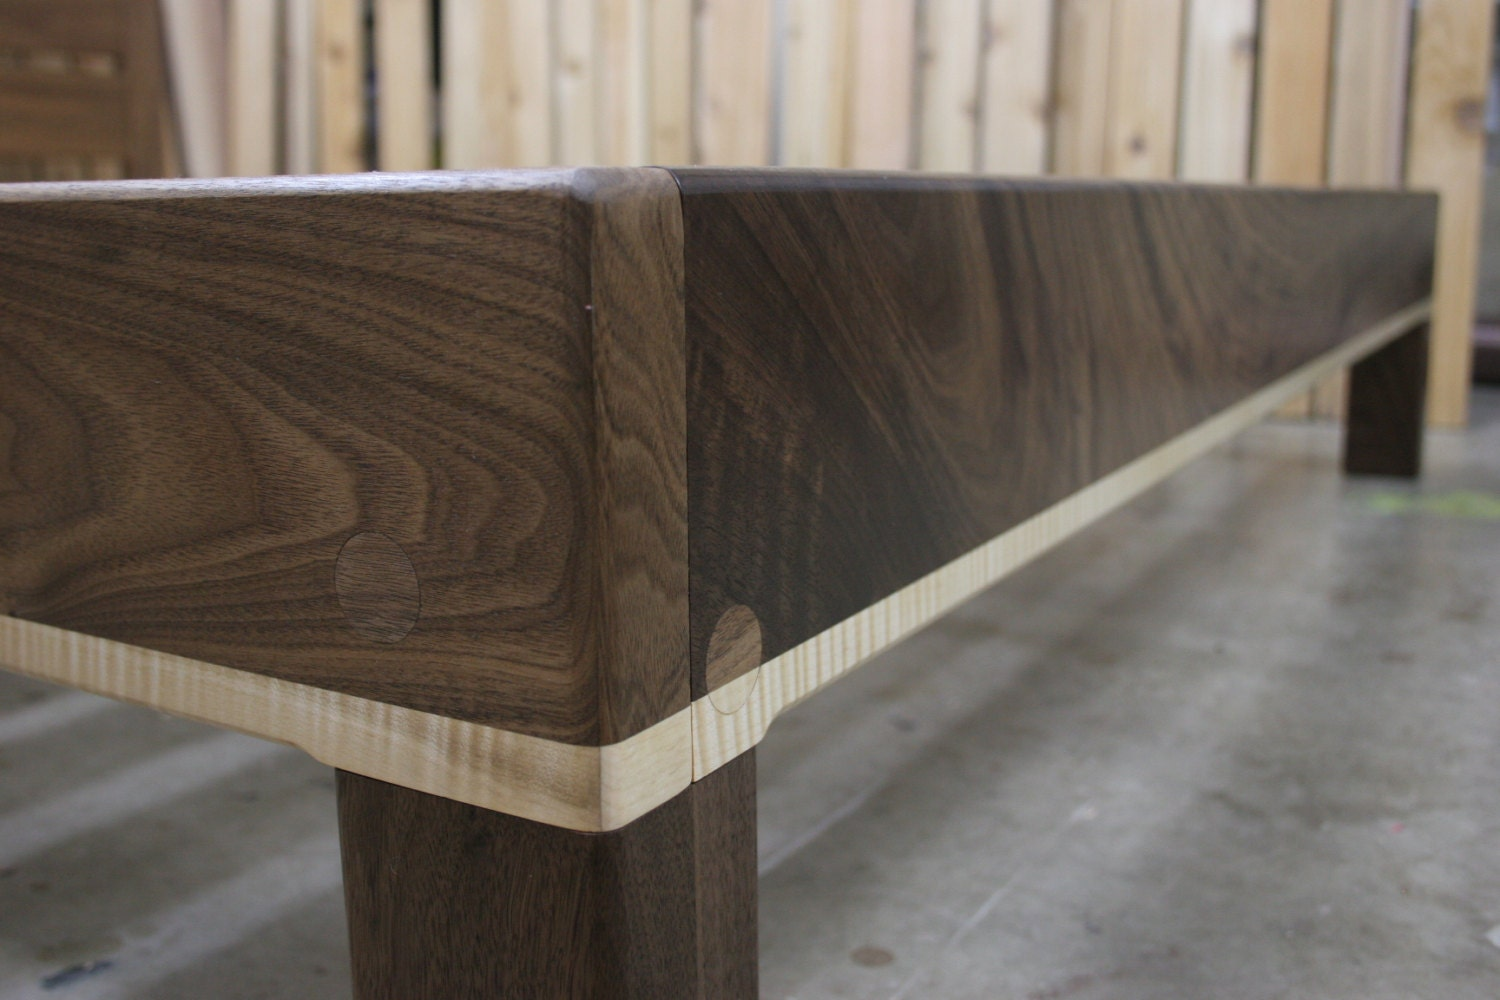 Curly Maple and Walnut Queen Platform Bed Frame with Truly